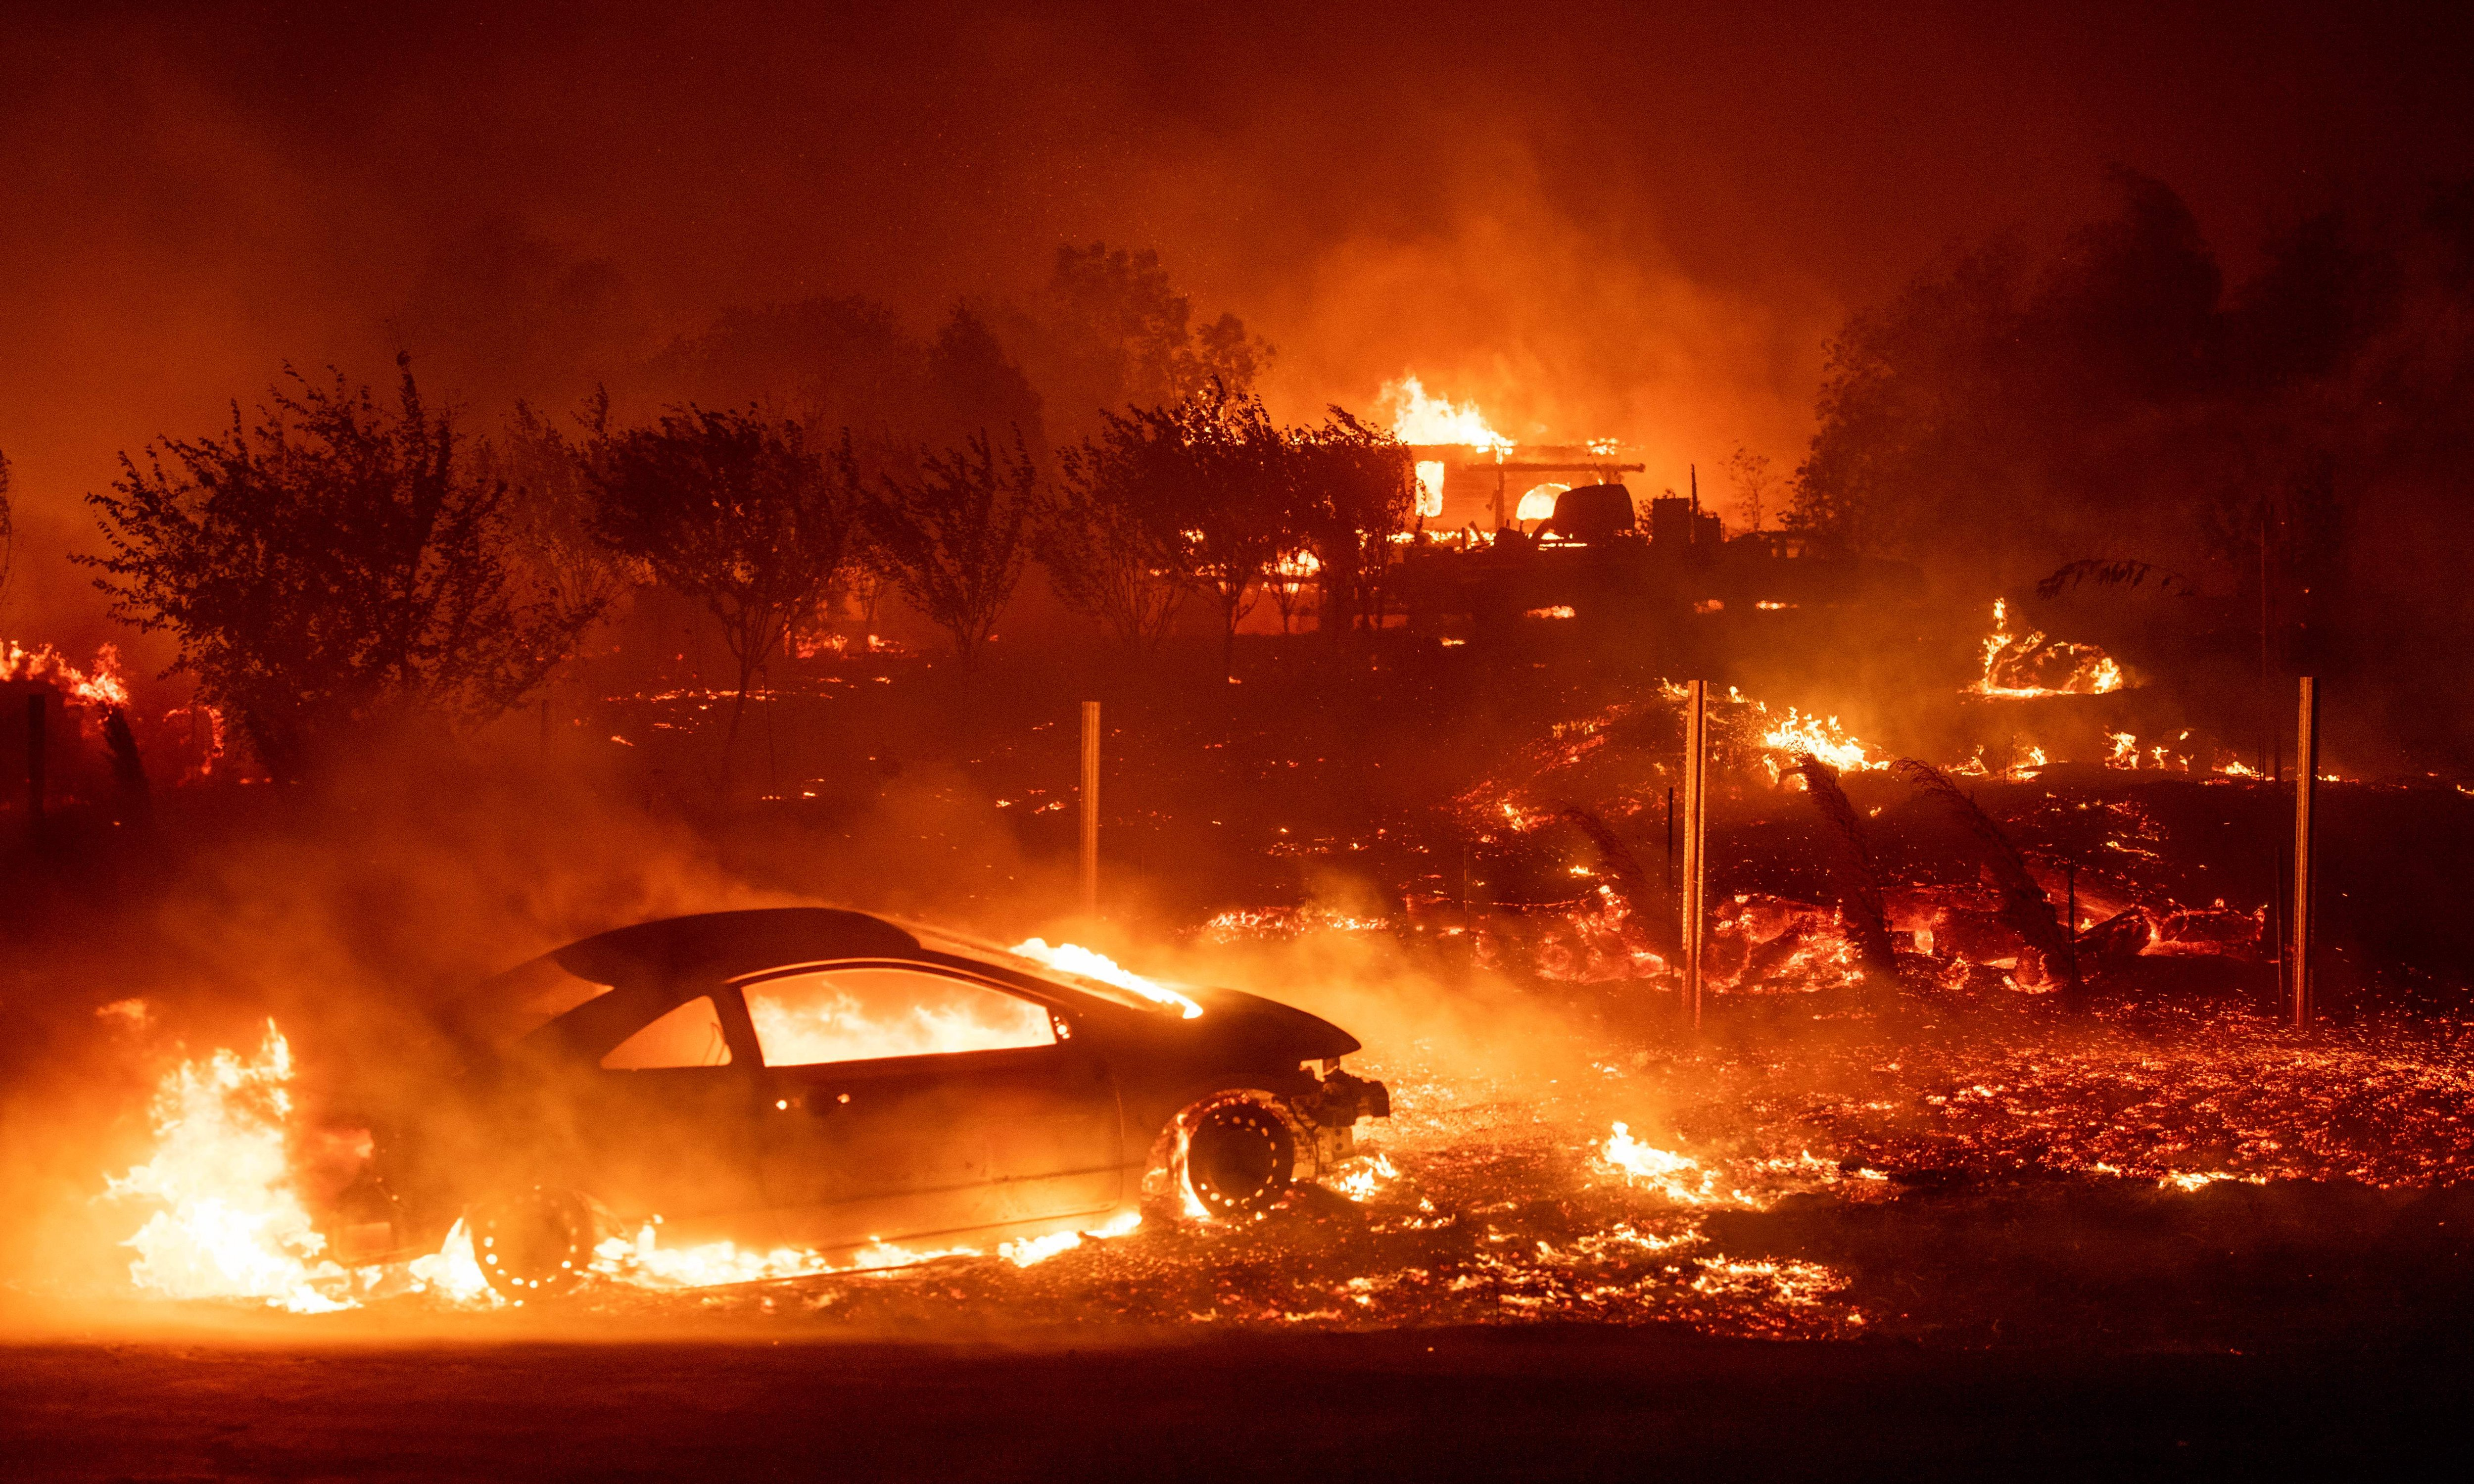 Infographic: Wildfires and Climate Change